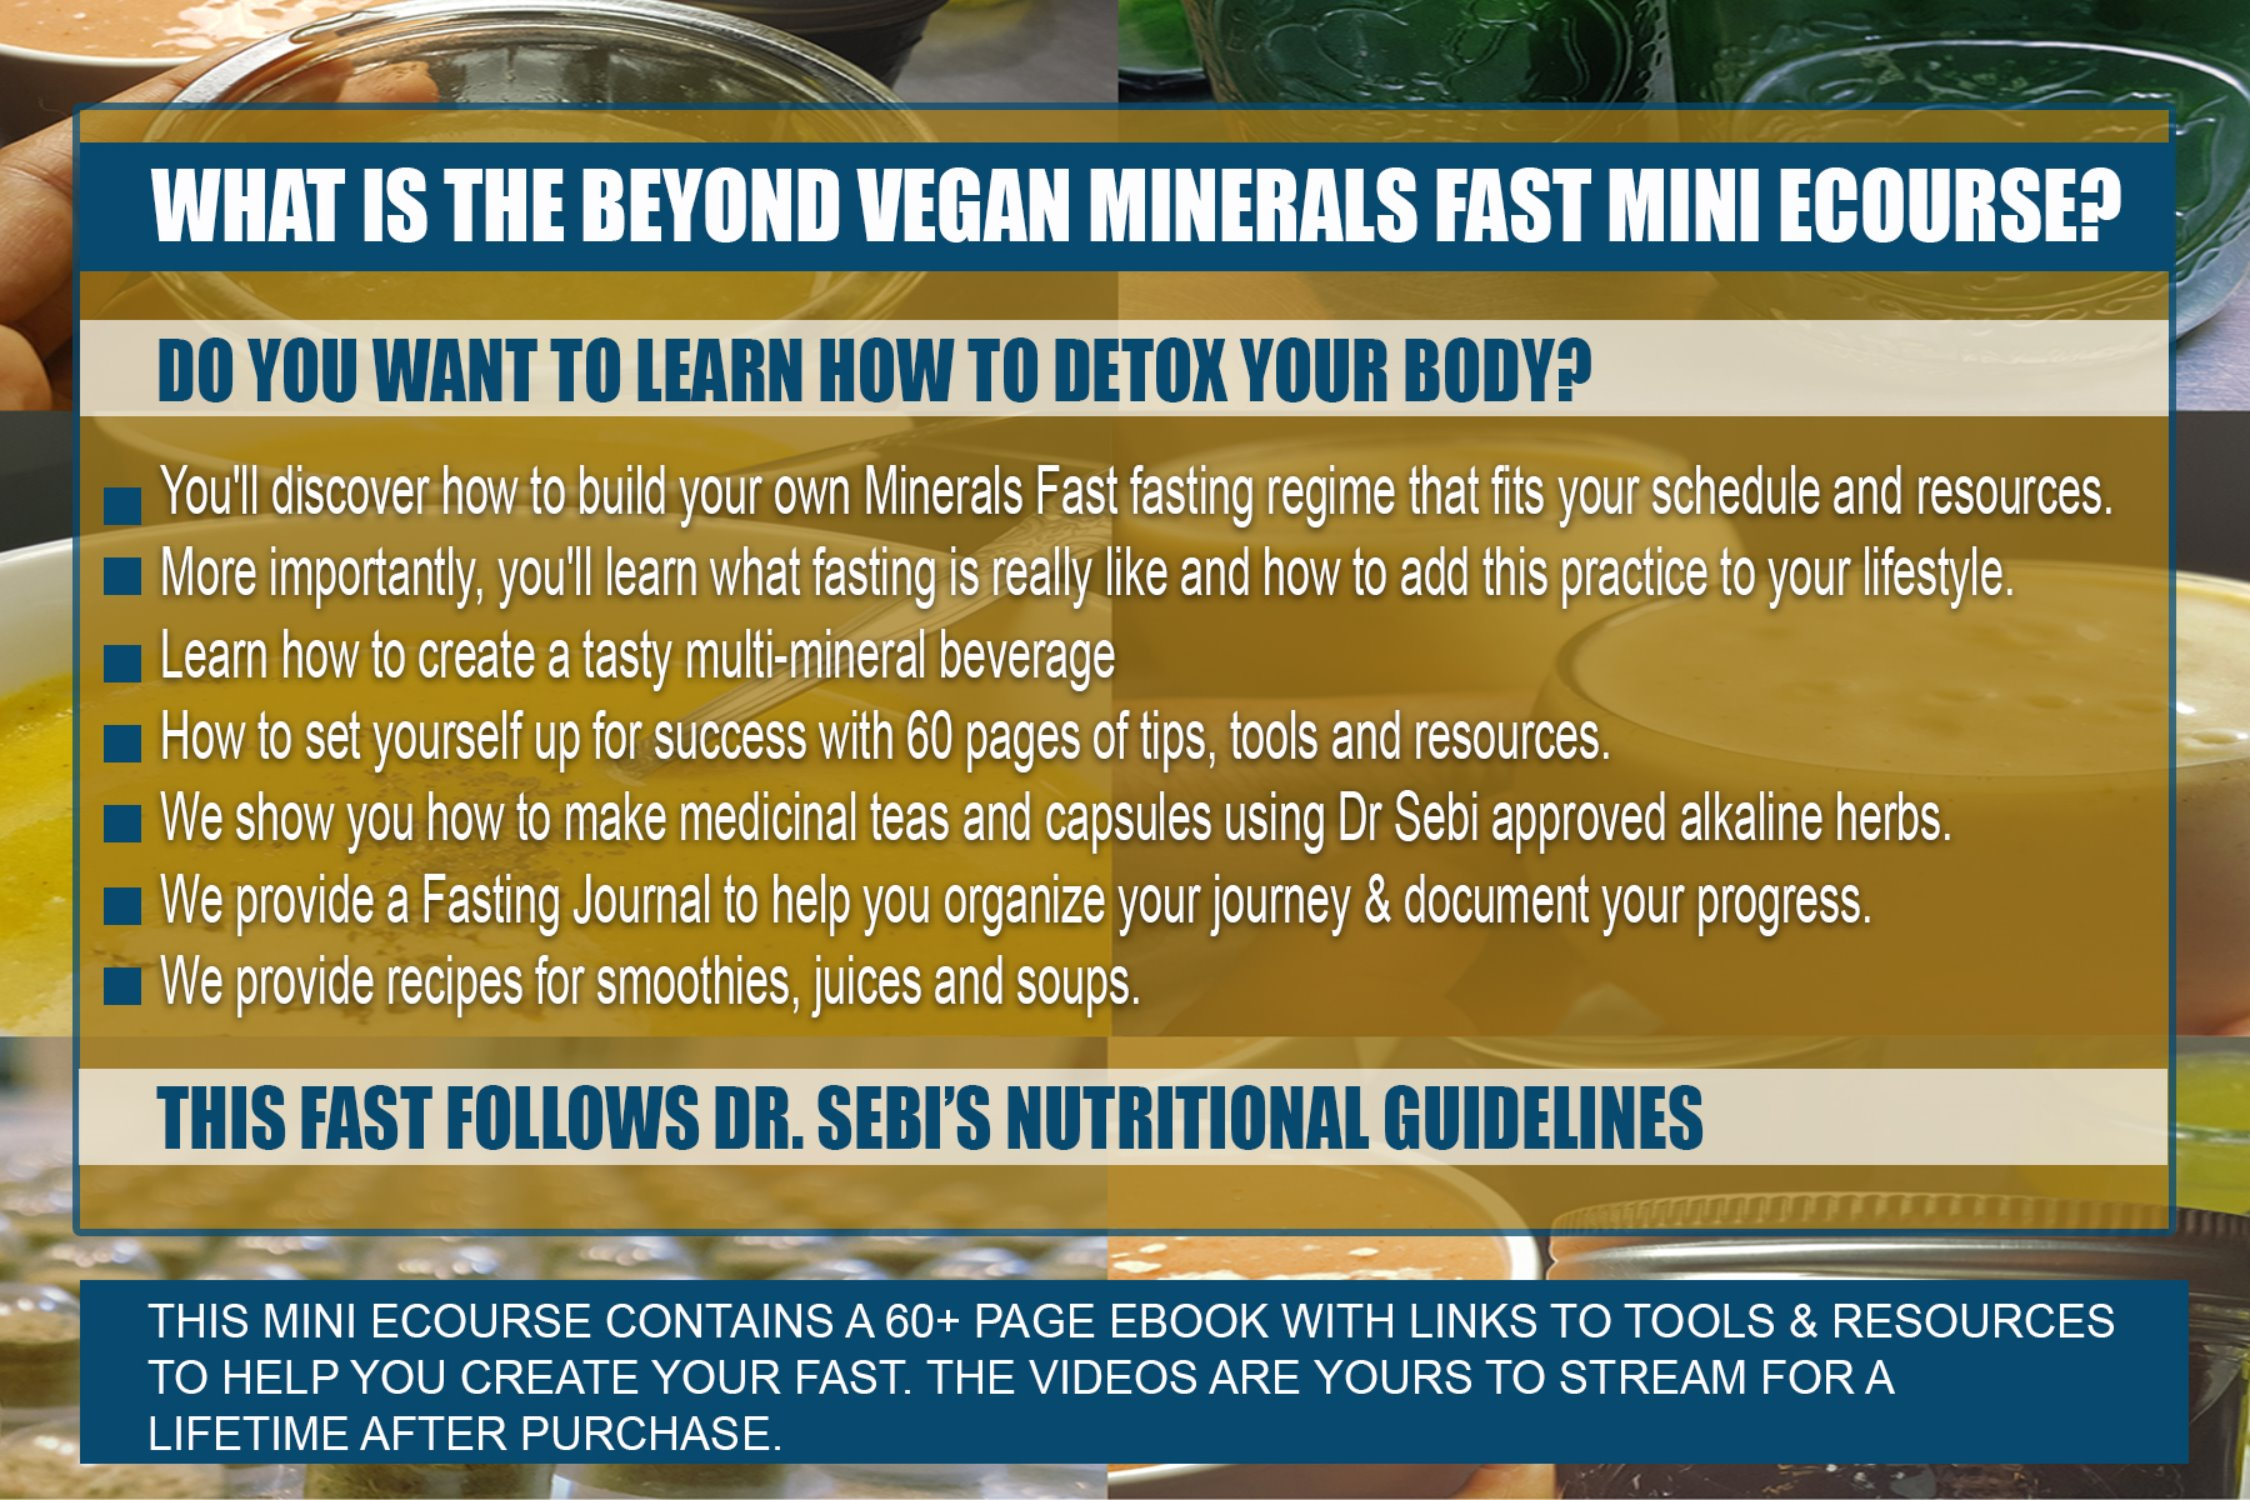 BEYOND VEGAN (TM) MINERALS FAST DIGITAL MINI ECOURSE